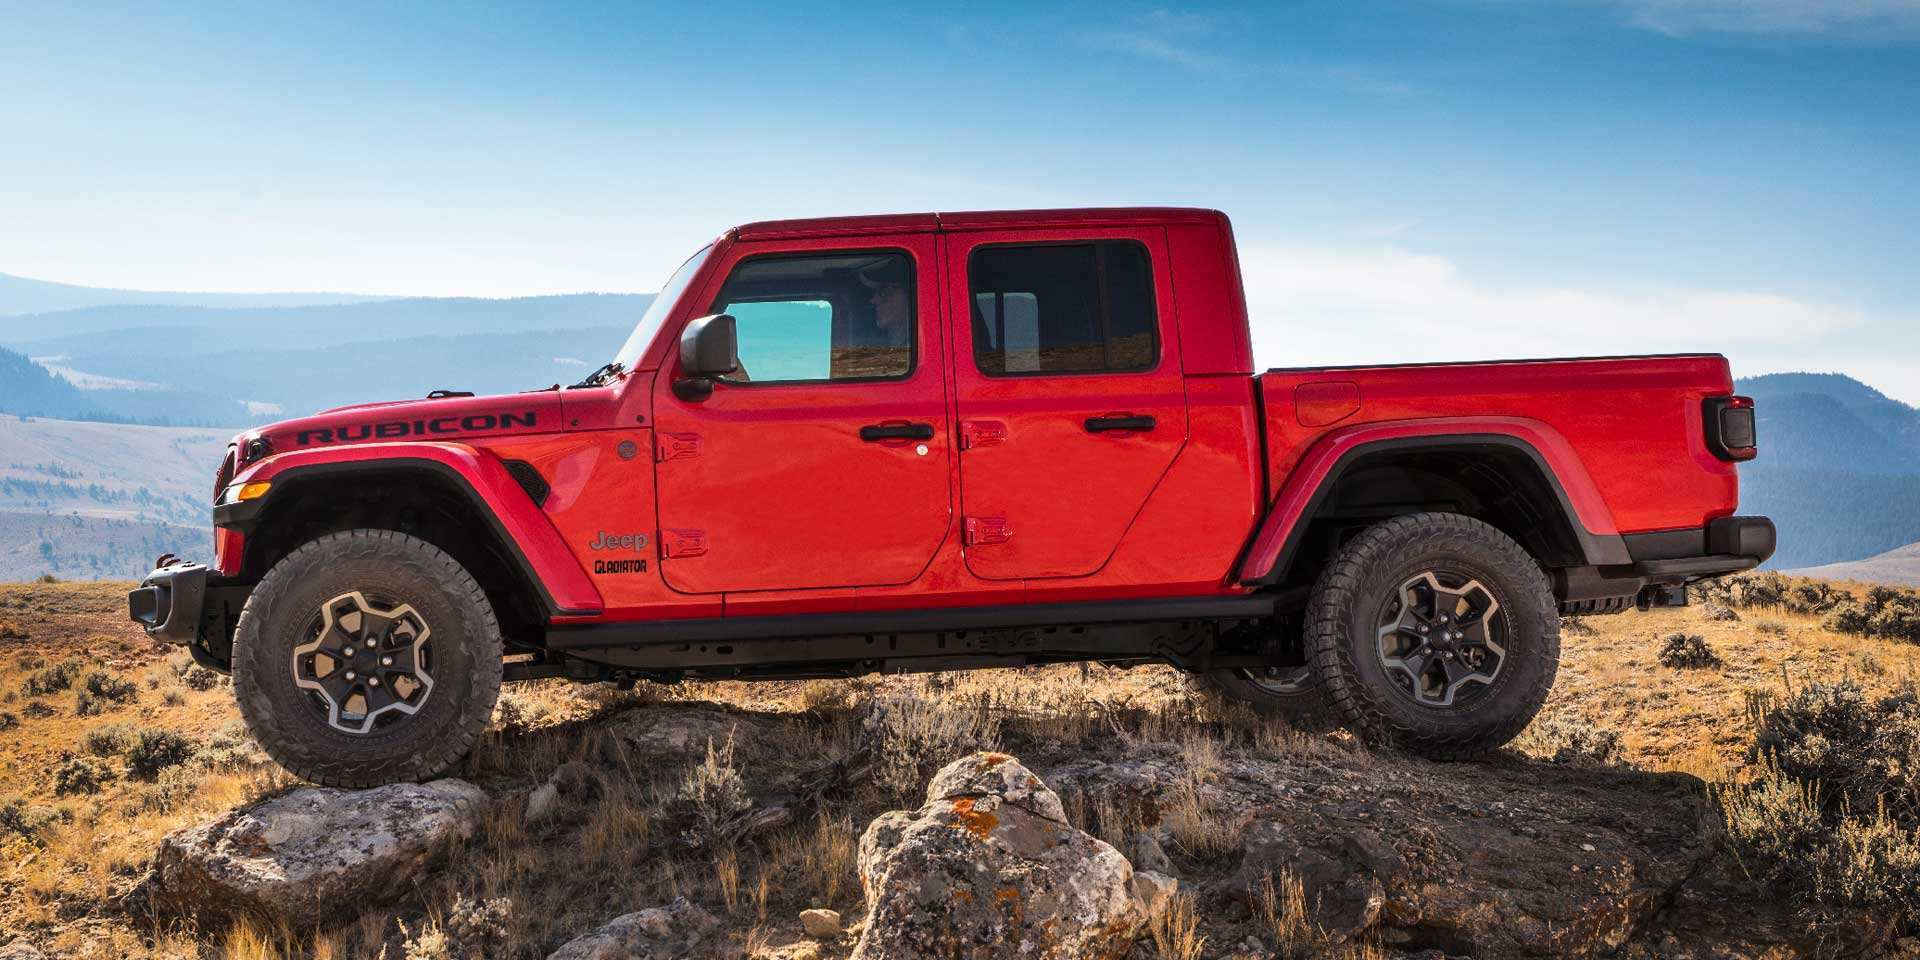 17 All New Jeep Vehicles 2020 Price And Release Date